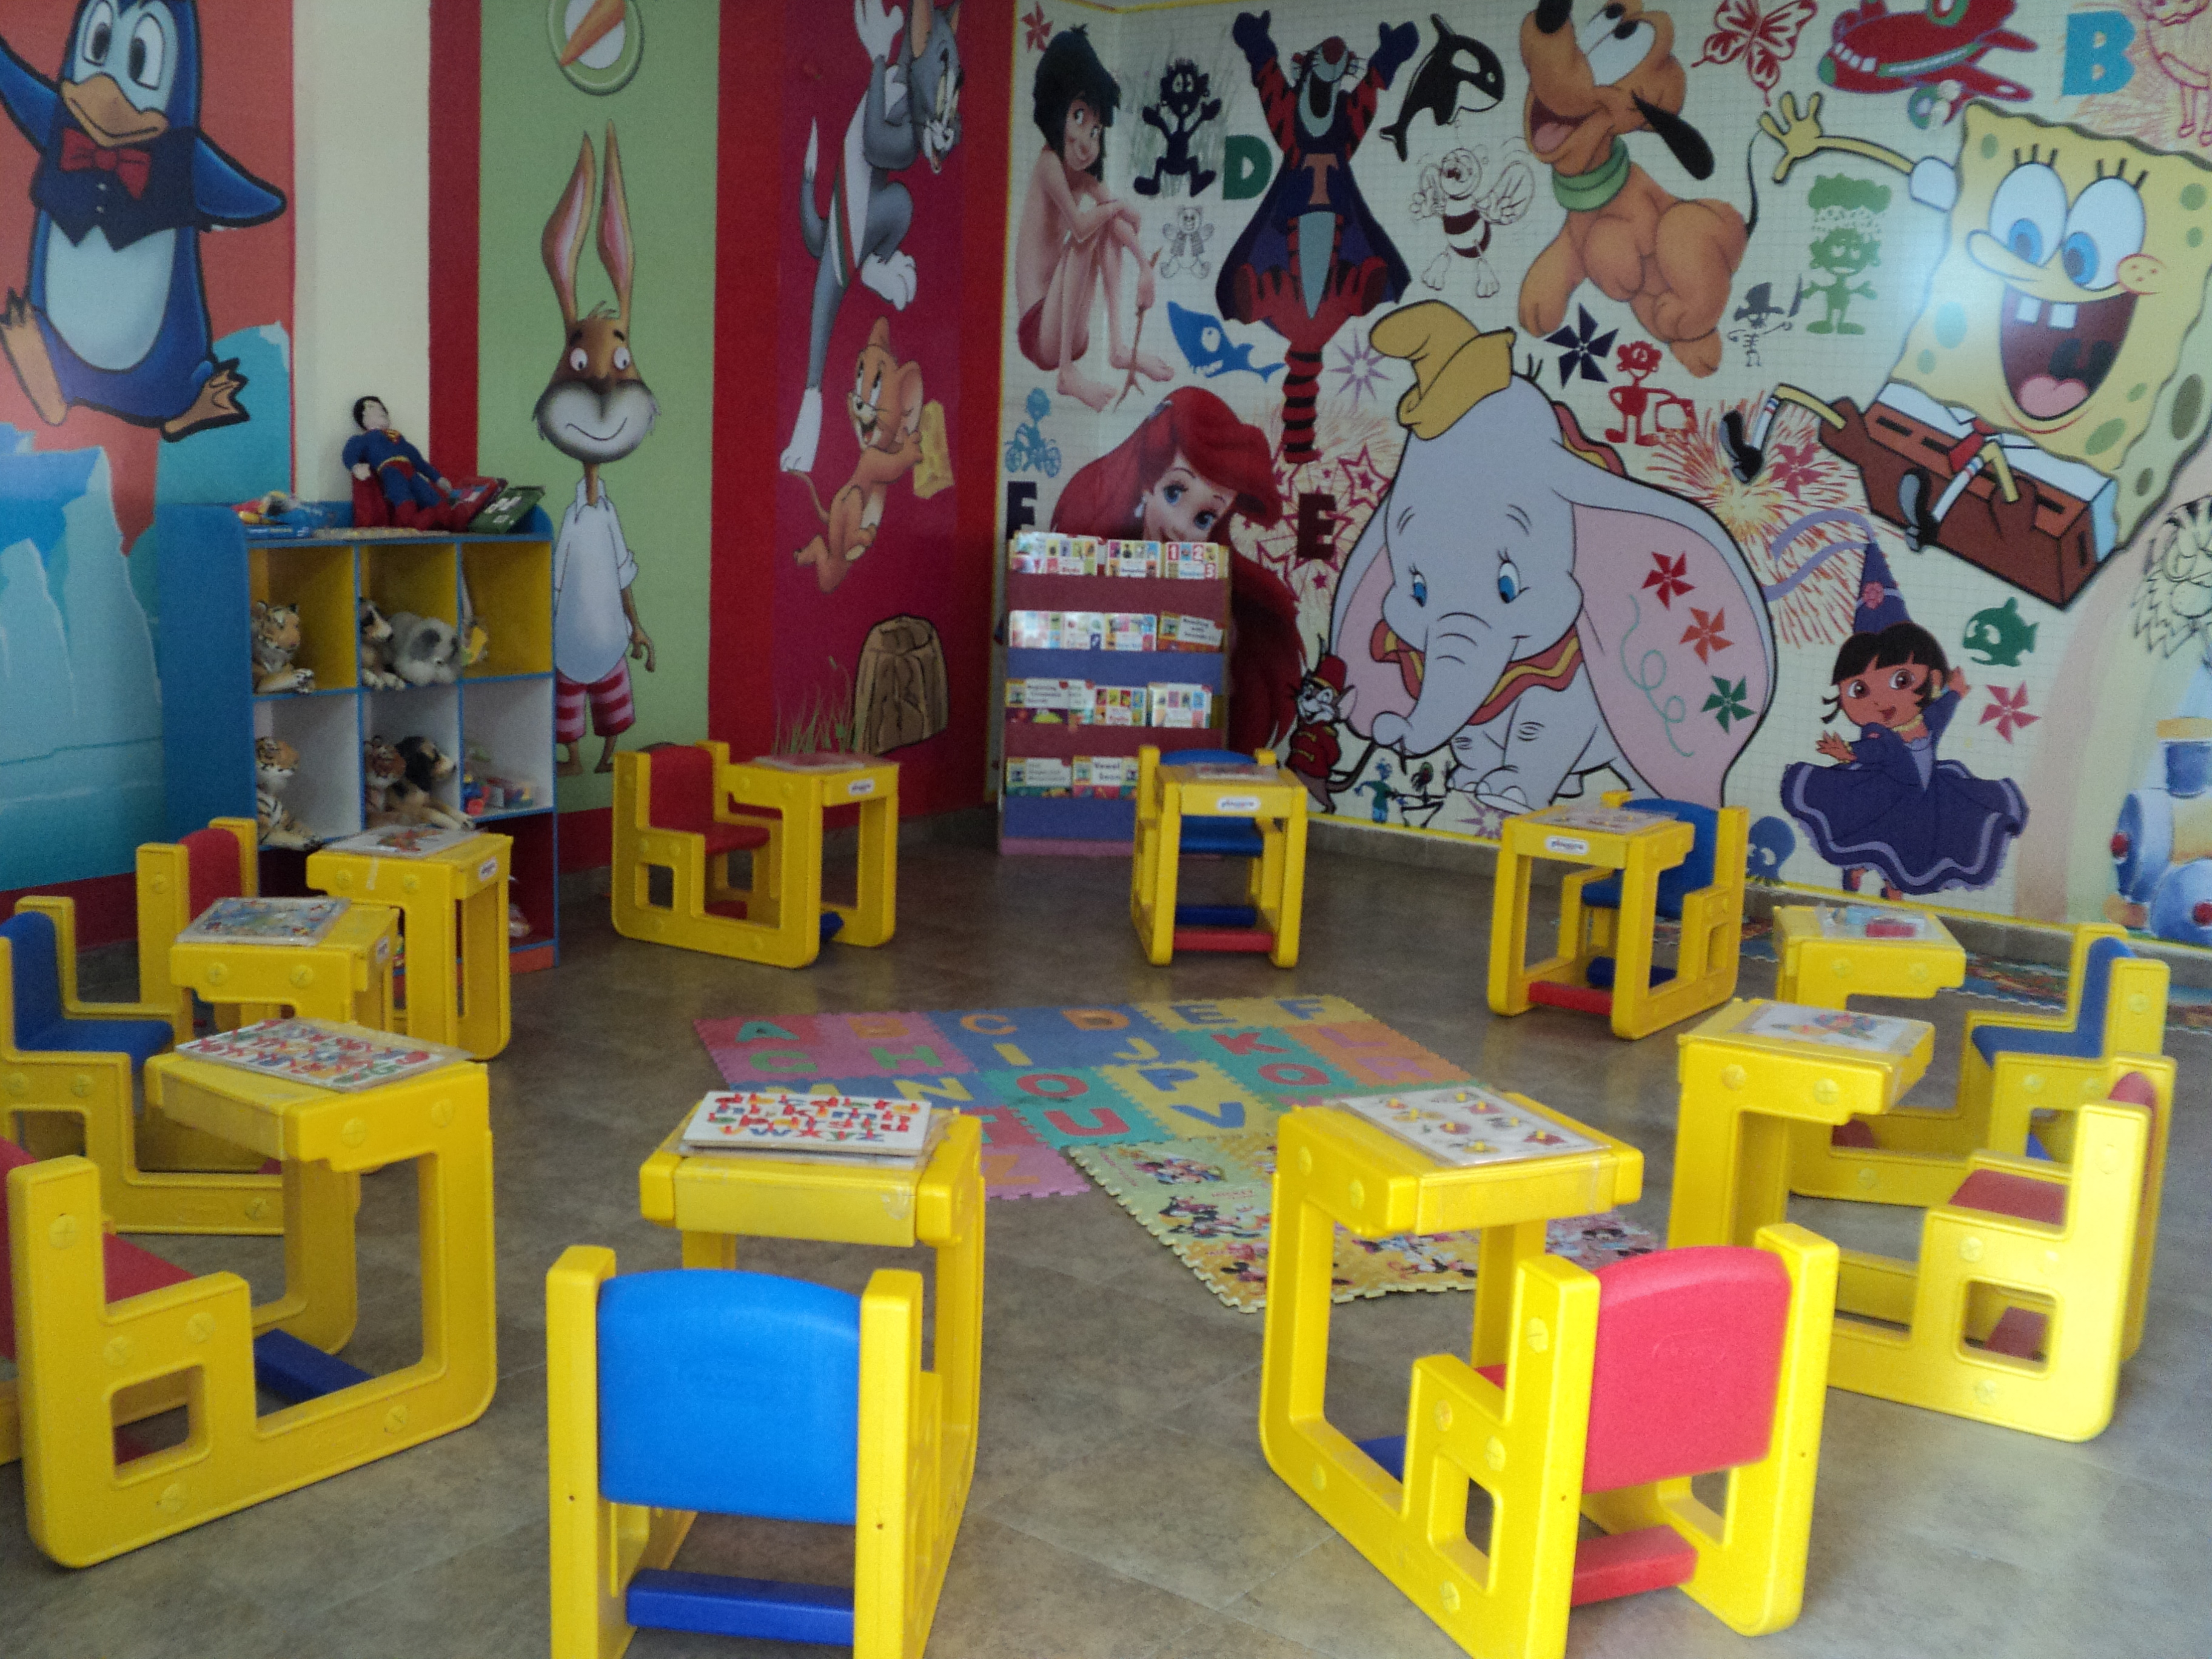 Kinder Garden: File:Brighton International School, Raipur